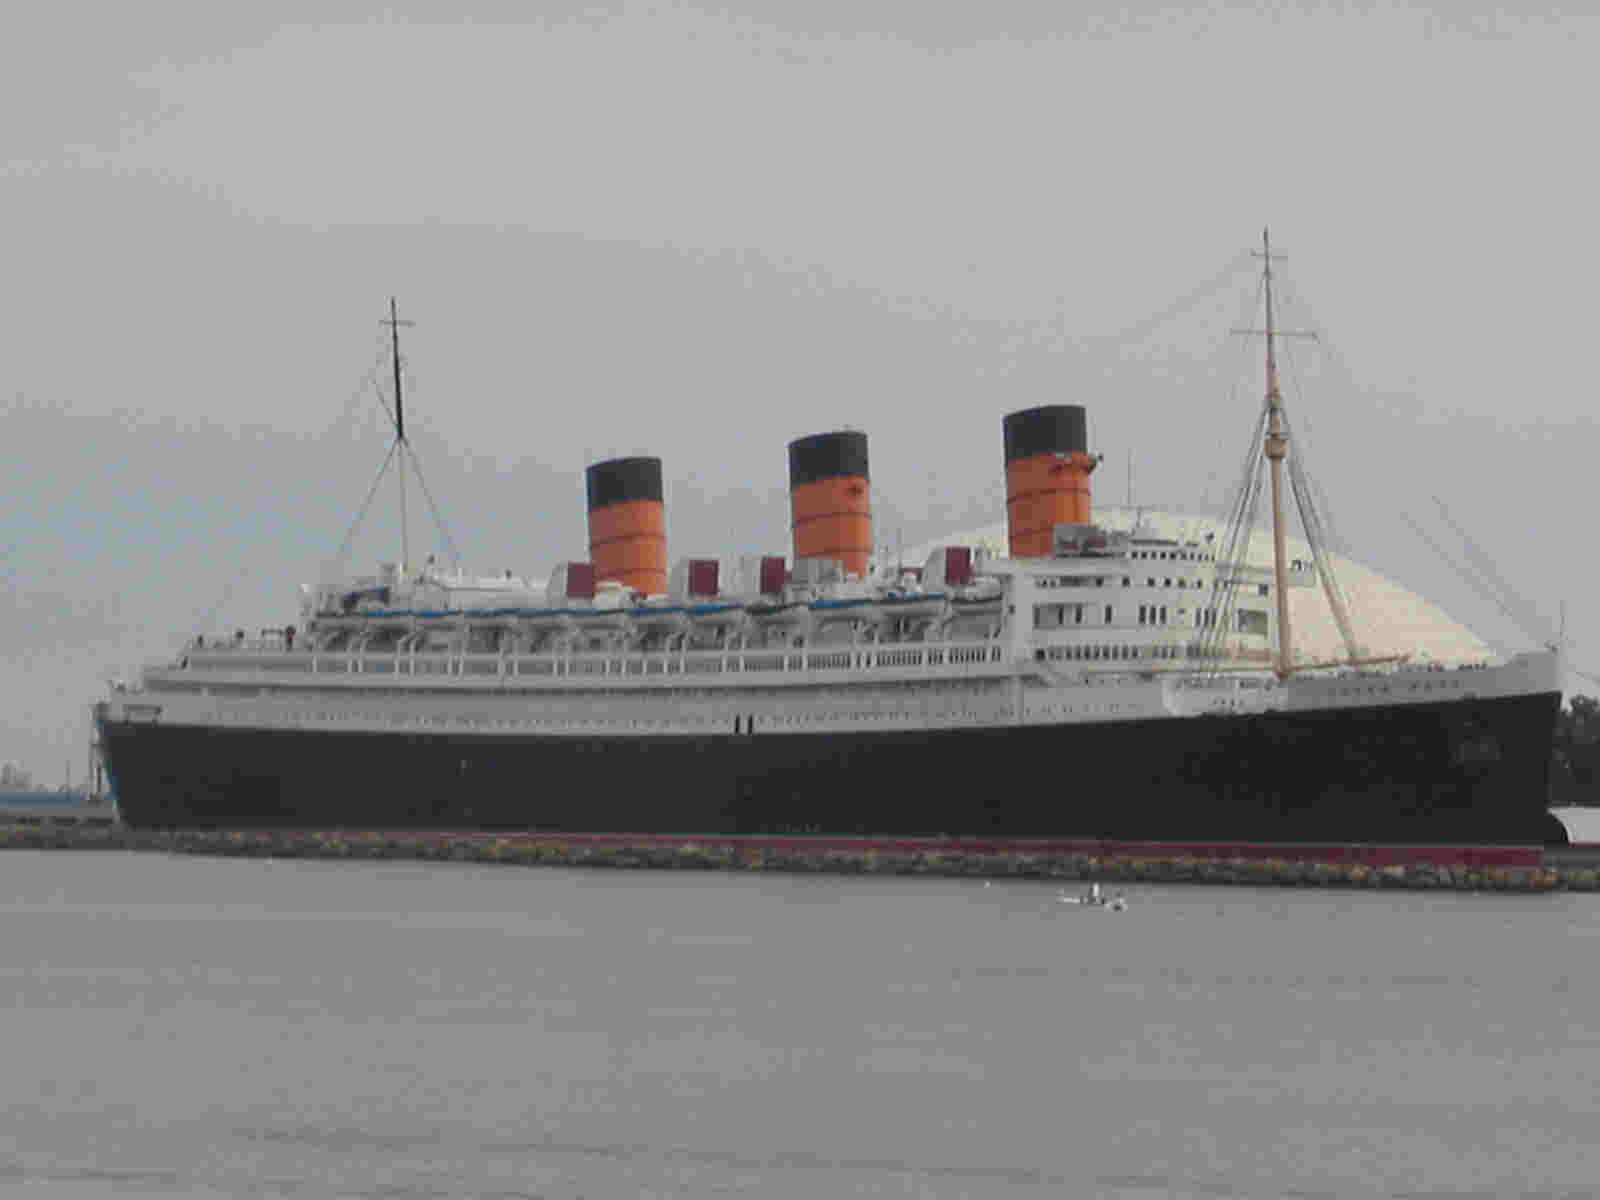 The Rms queen mary pictures